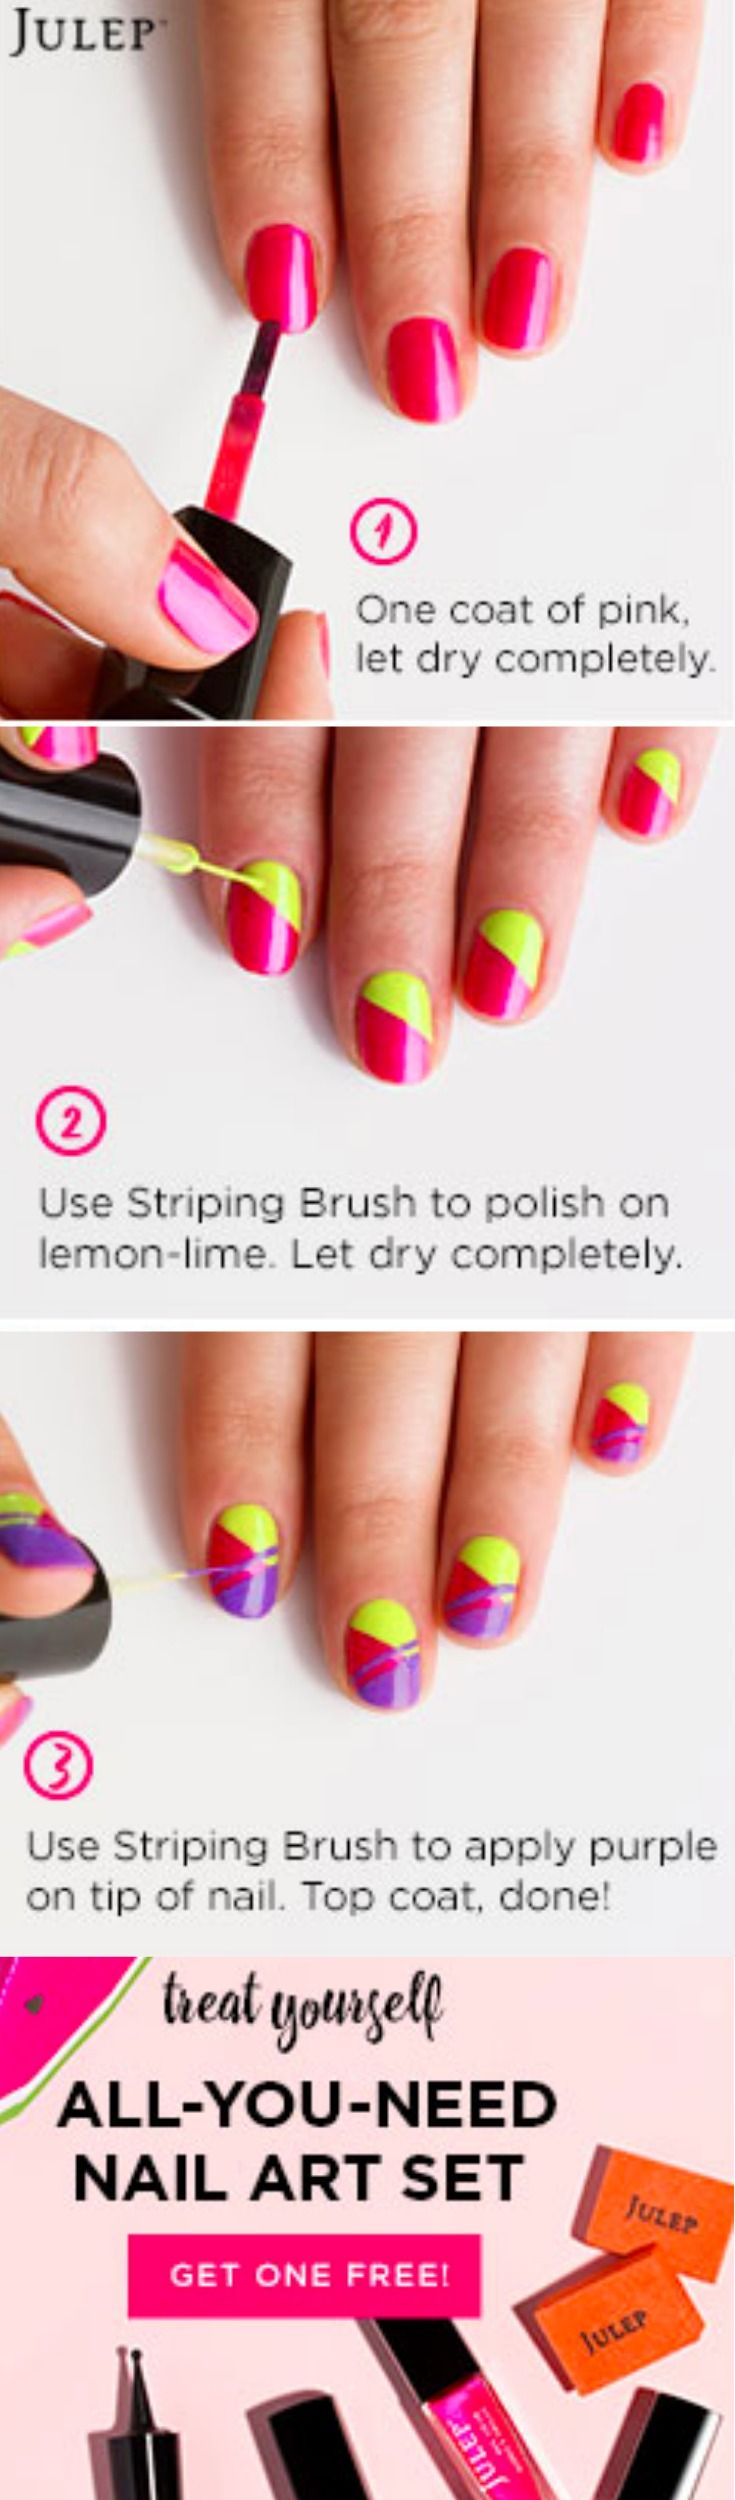 Nail designs are so cool! Get a FREE Nails design box from Julep ...